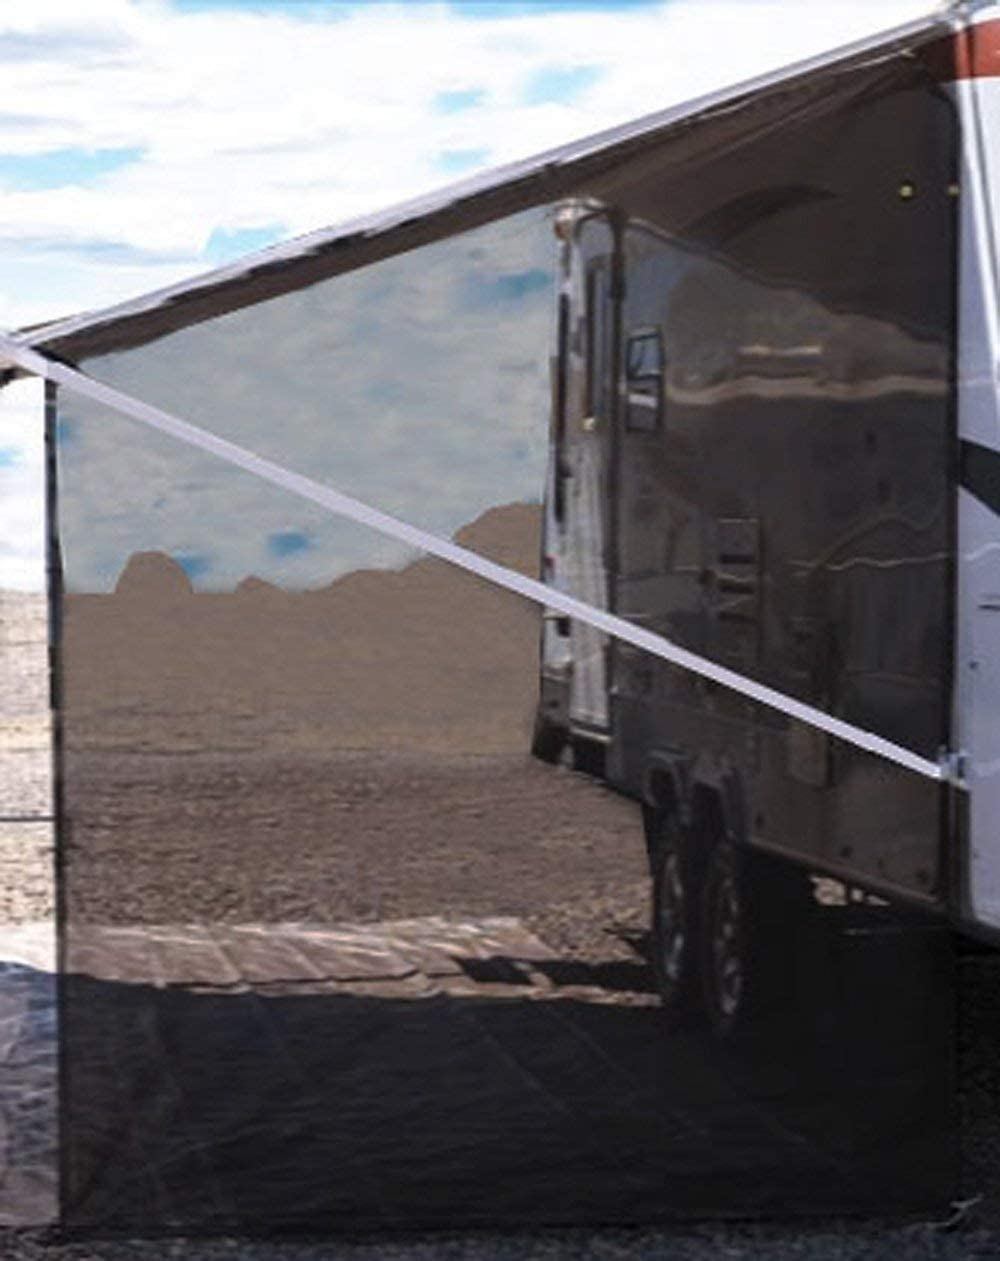 Tentproinc RV Awning Side Shade 9'X7' - Black Mesh Screen Sunshade Complete Kits Camping Trailer Canopy UV Sun Blocker - 3 Years Limited Warranty